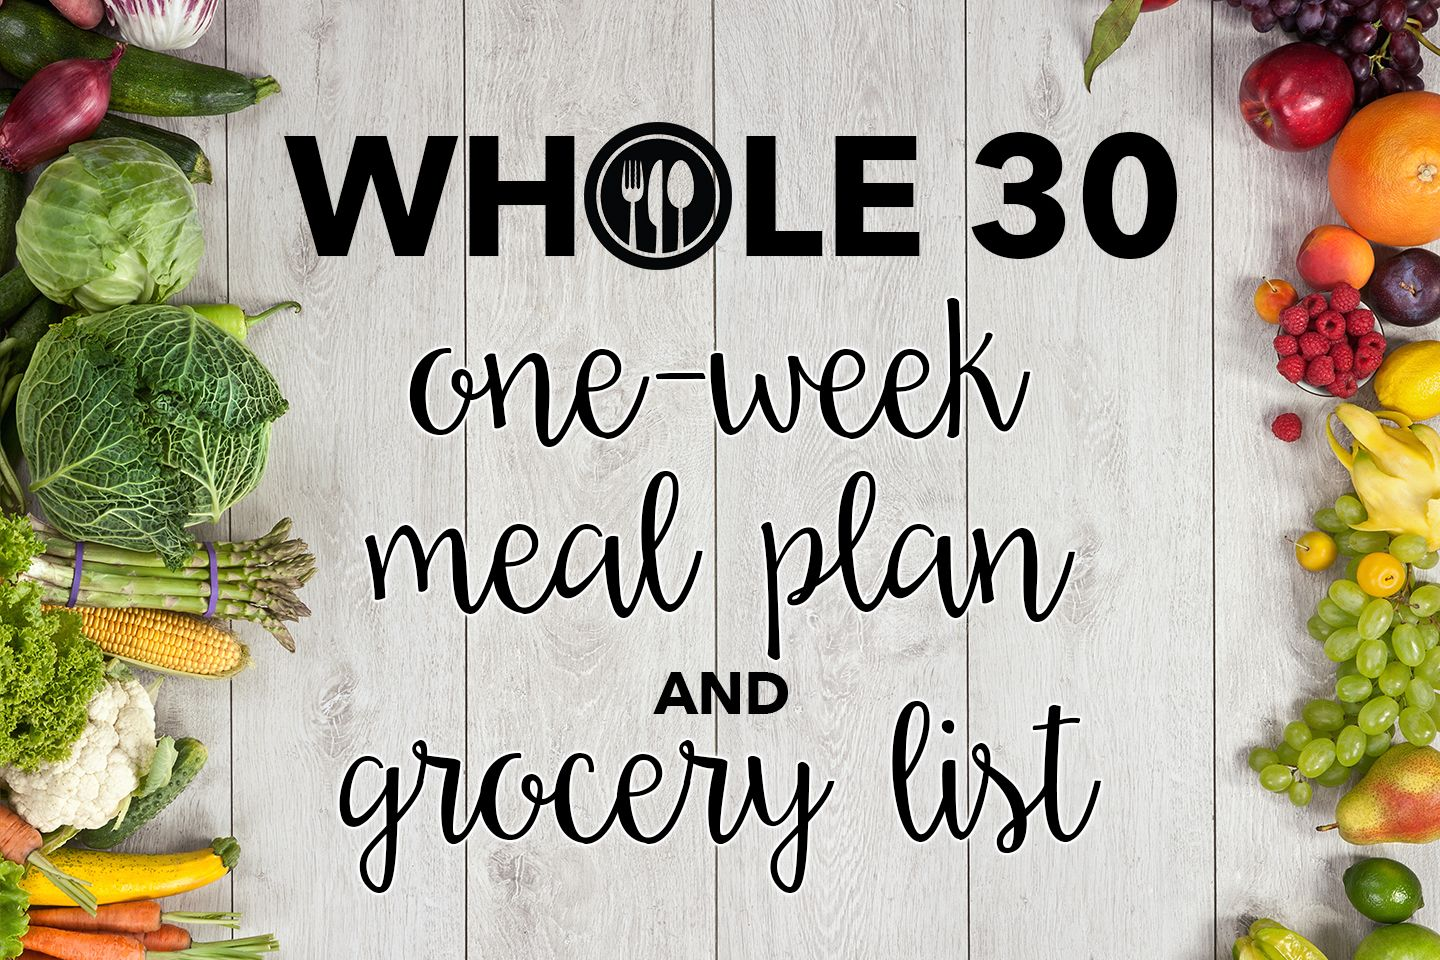 I Tried The Whole30 Challenge Here S What Happened Whole 30 Meal Plan Whole 30 Whole 30 Diet